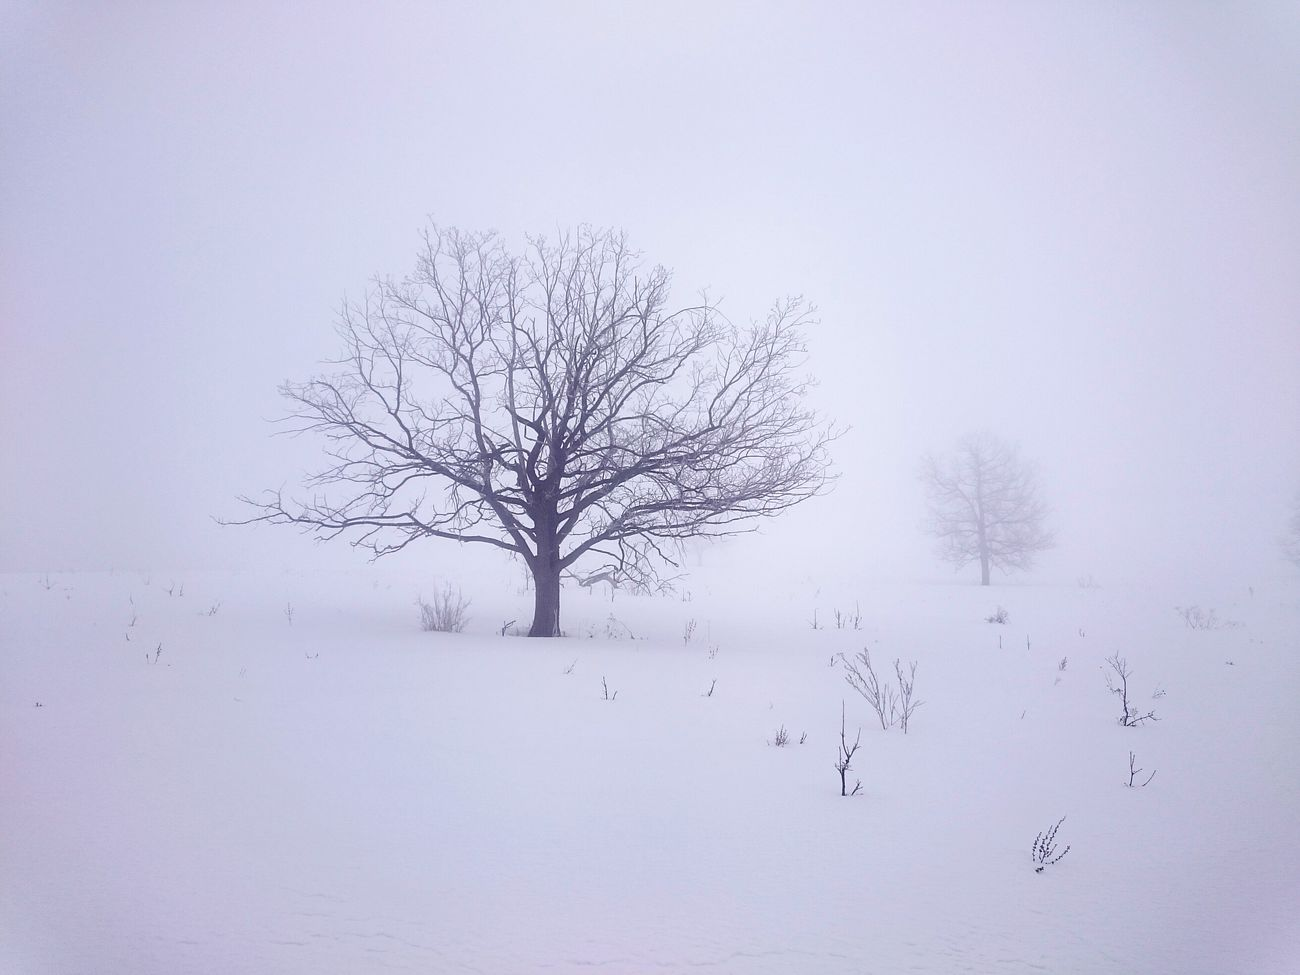 Bare Tree Nature Snow Tree No People Cold Temperature Day Winter Snowing Beauty In Nature Close-up Outdoors зима туман лес и природа дуб